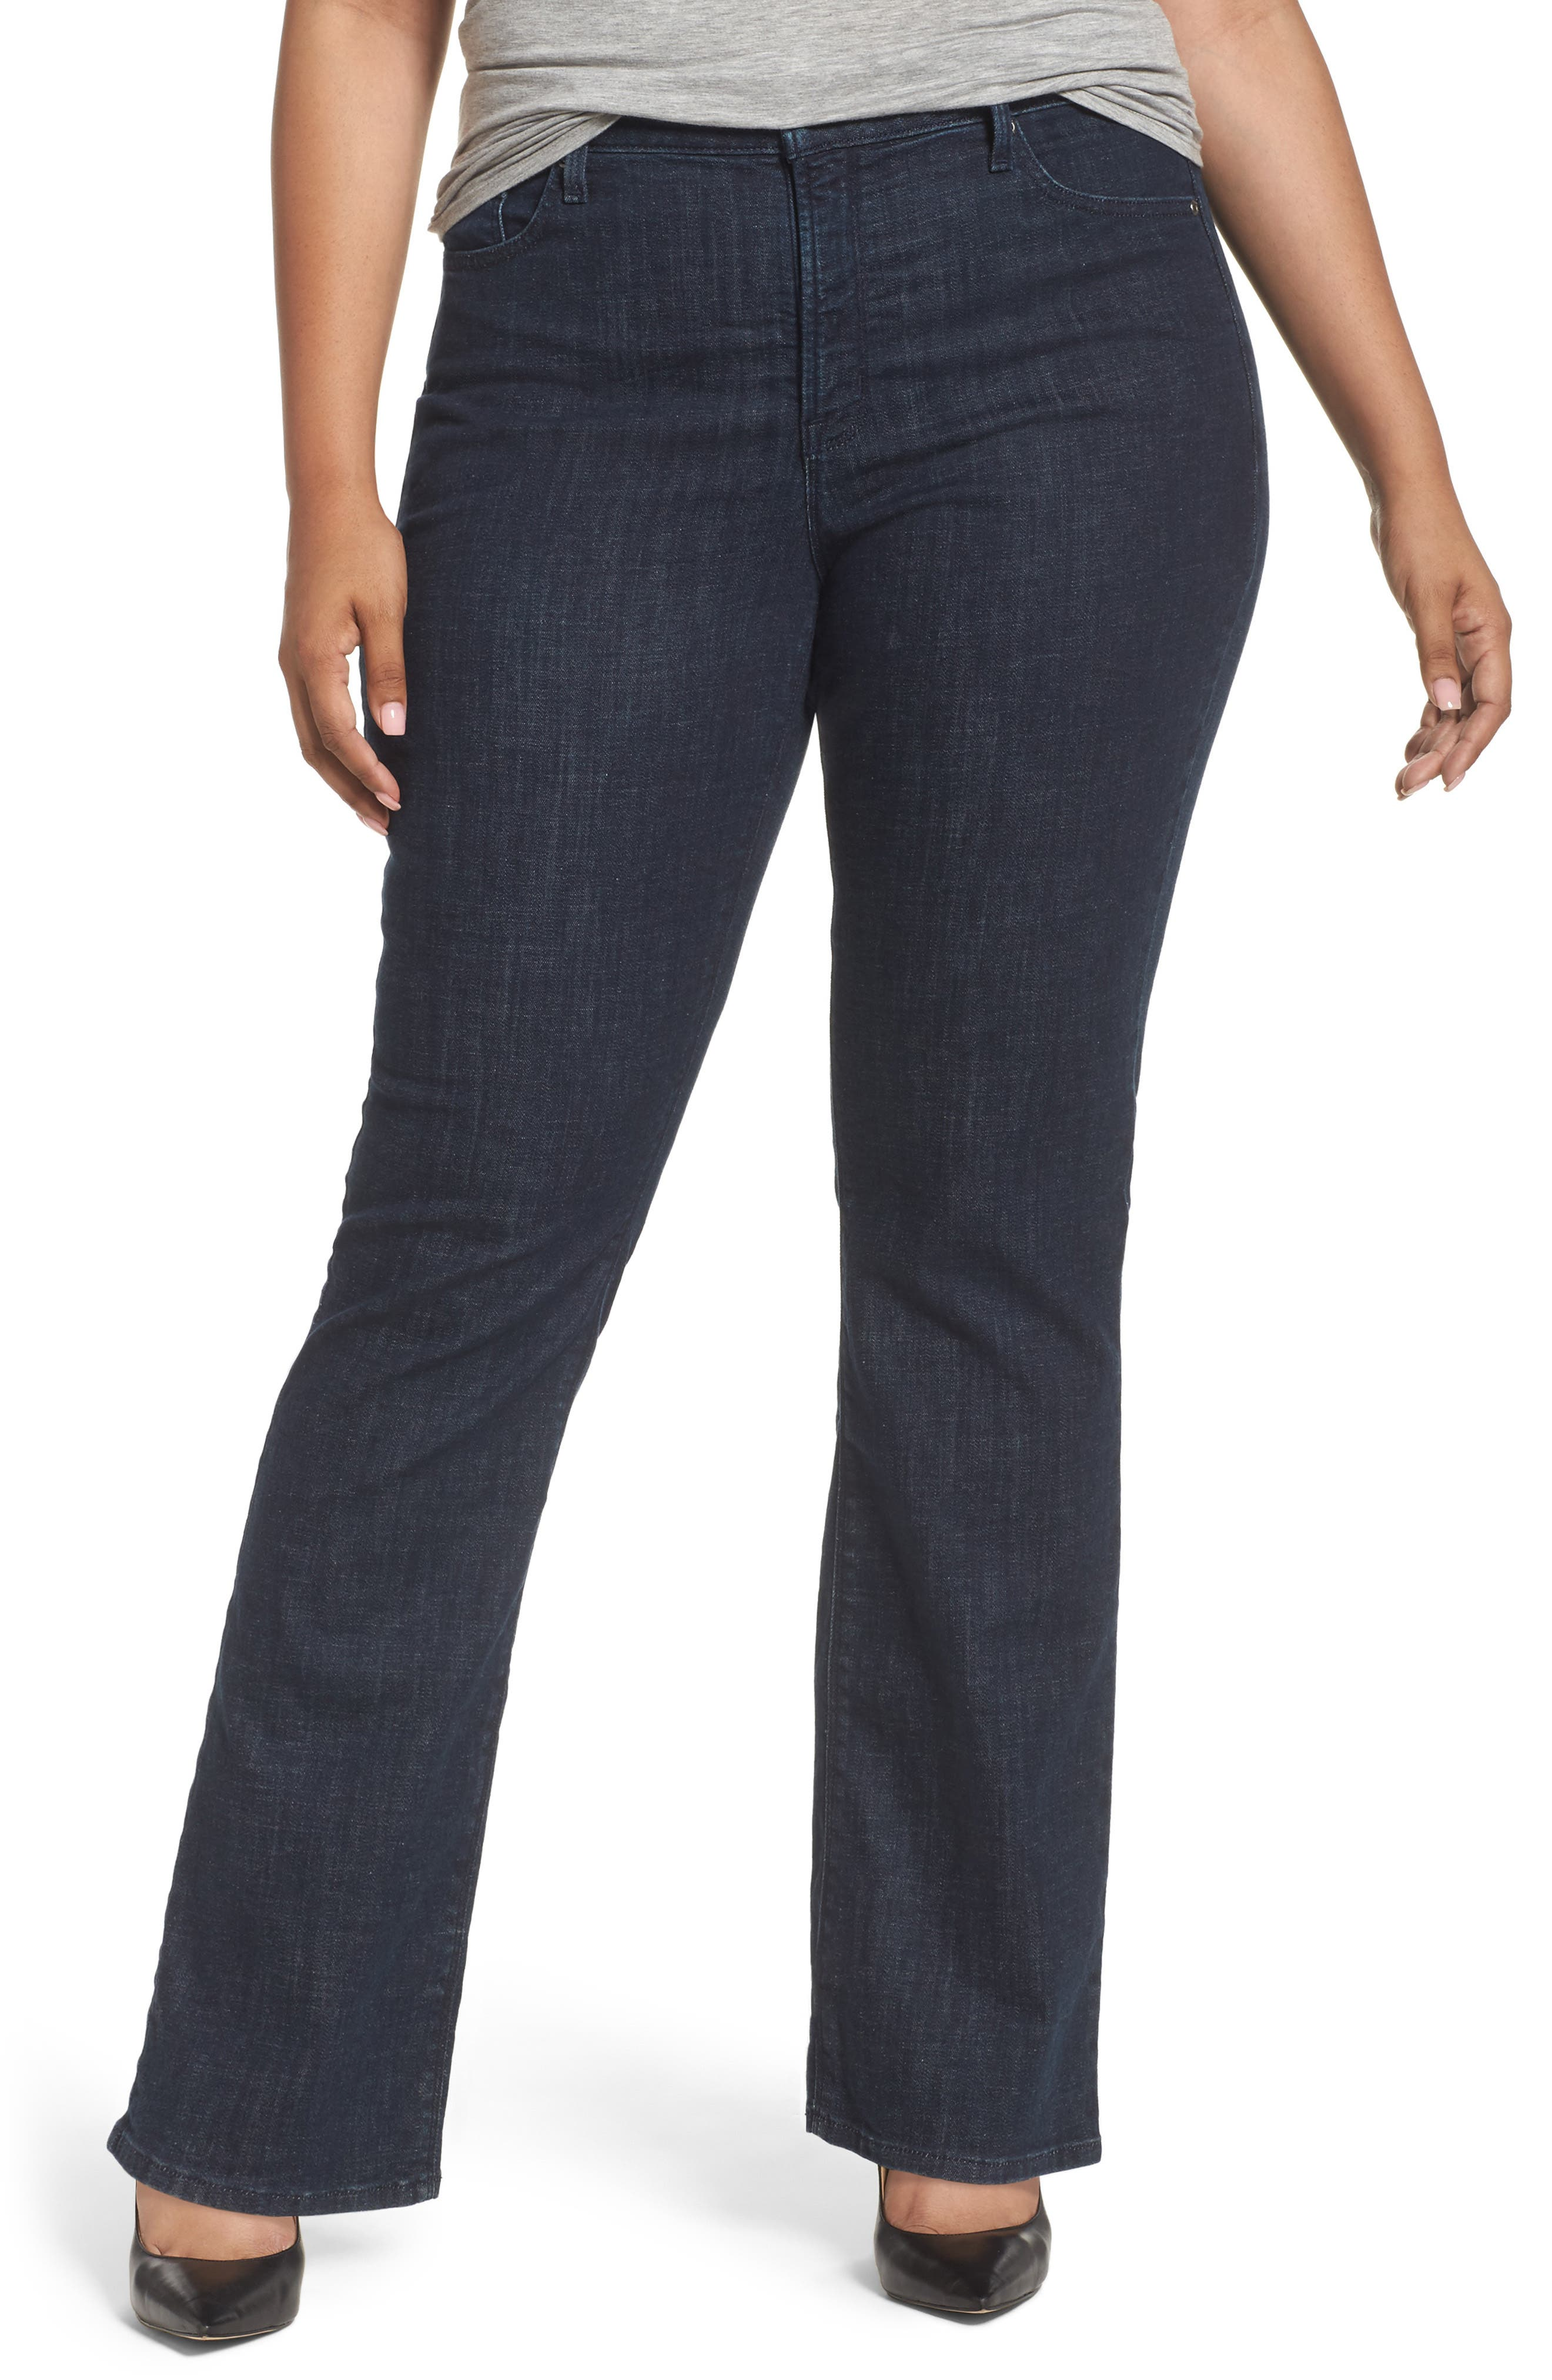 Alternate Image 1 Selected - NYDJ Barbara Stretch Bootcut Jeans (Plus Size)